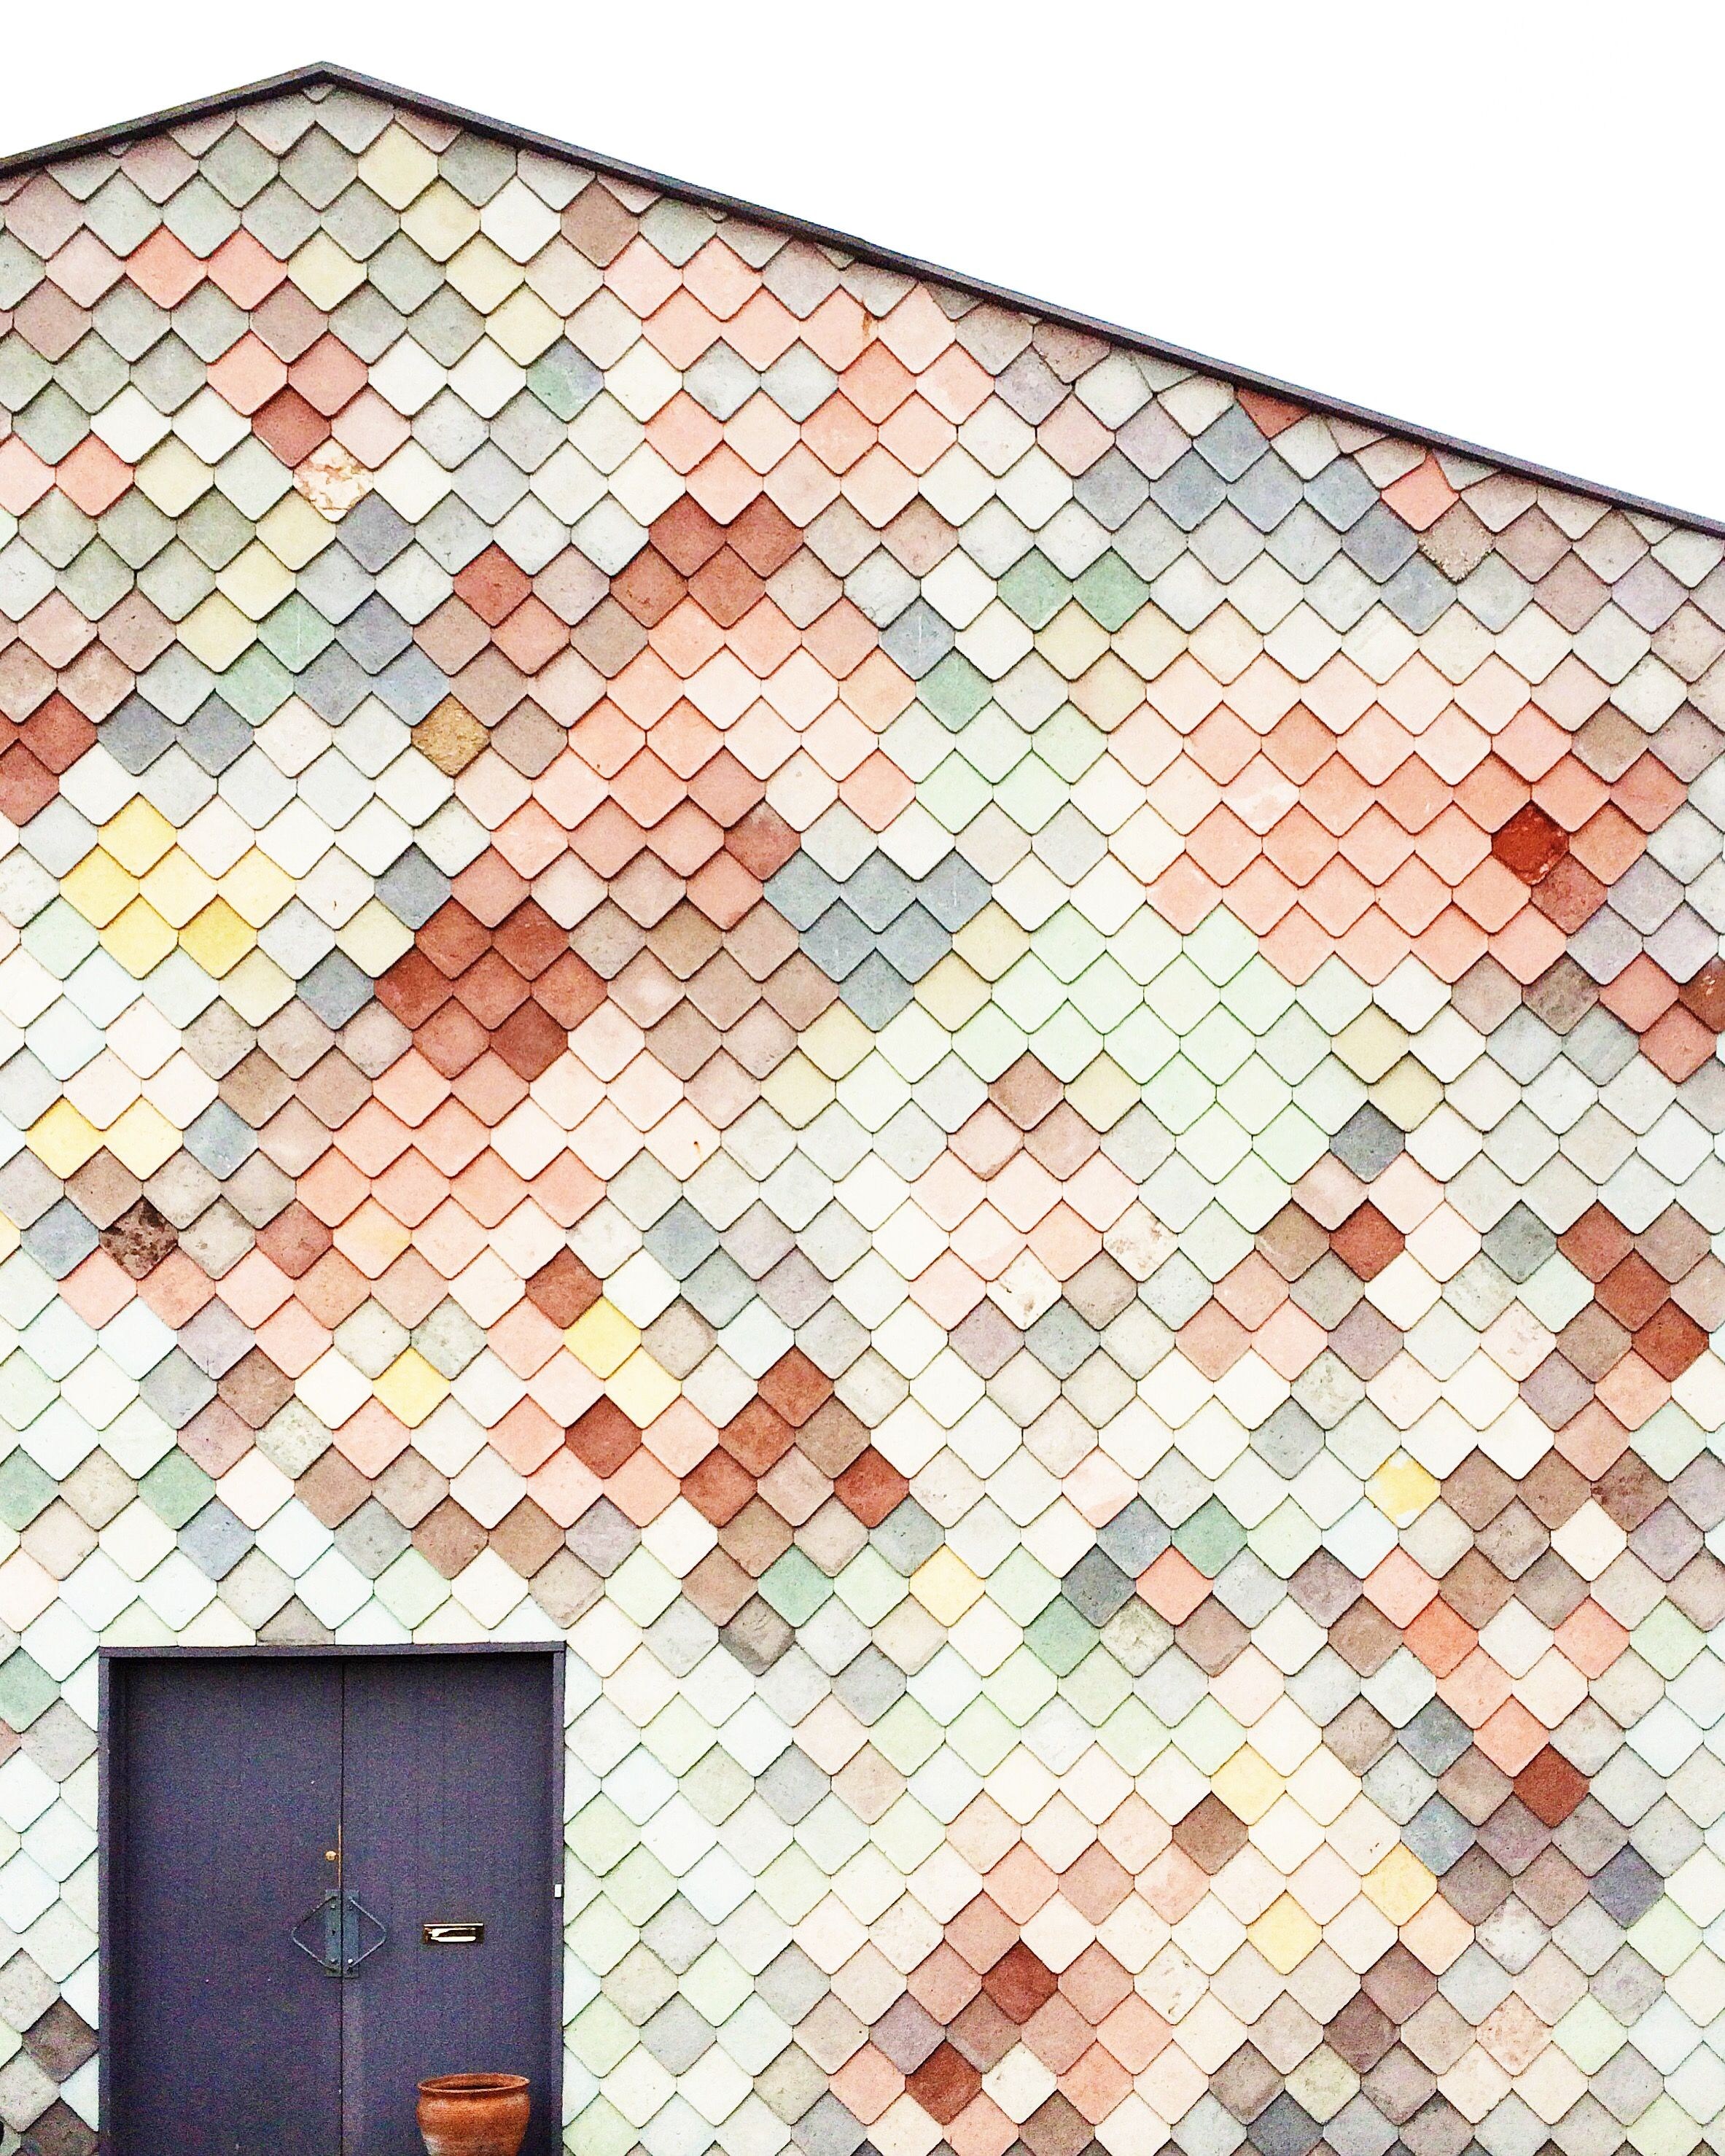 The Pastel Scales Of Sugarhouse Studios Montgomeryfest Exterior Tiles Wall Exterior Colour Architecture